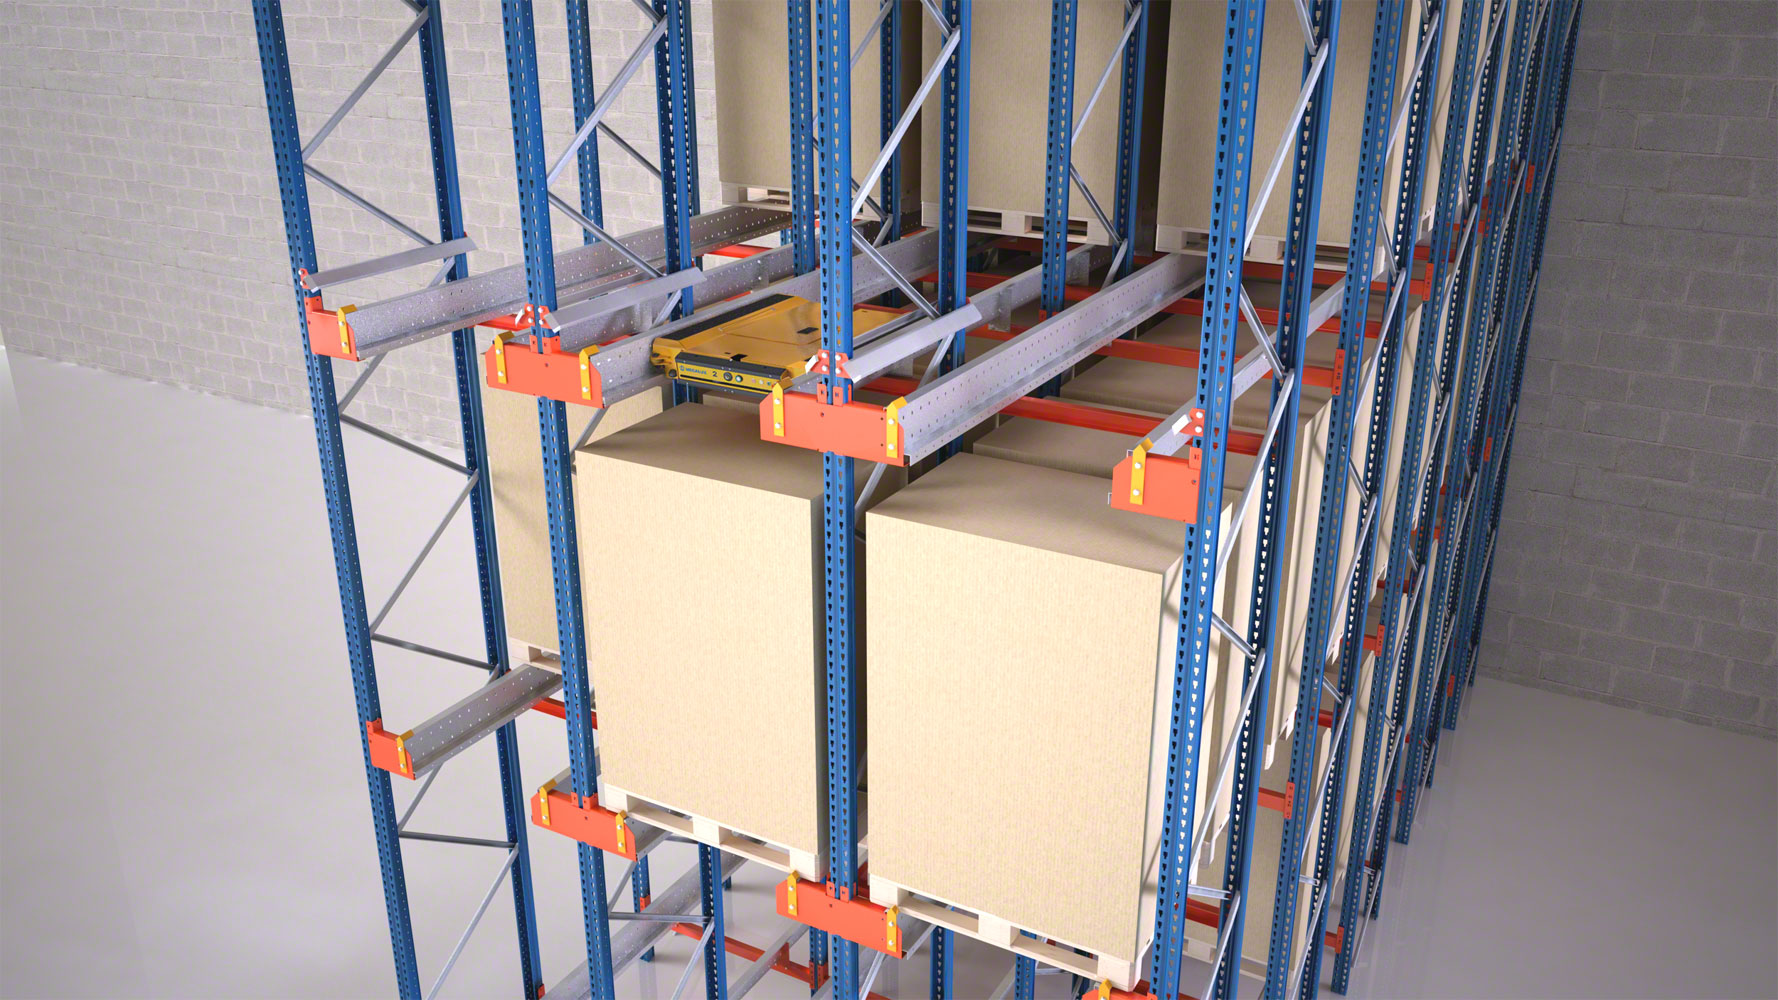 The Pallet Shuttle system allows for references to be grouped by channel